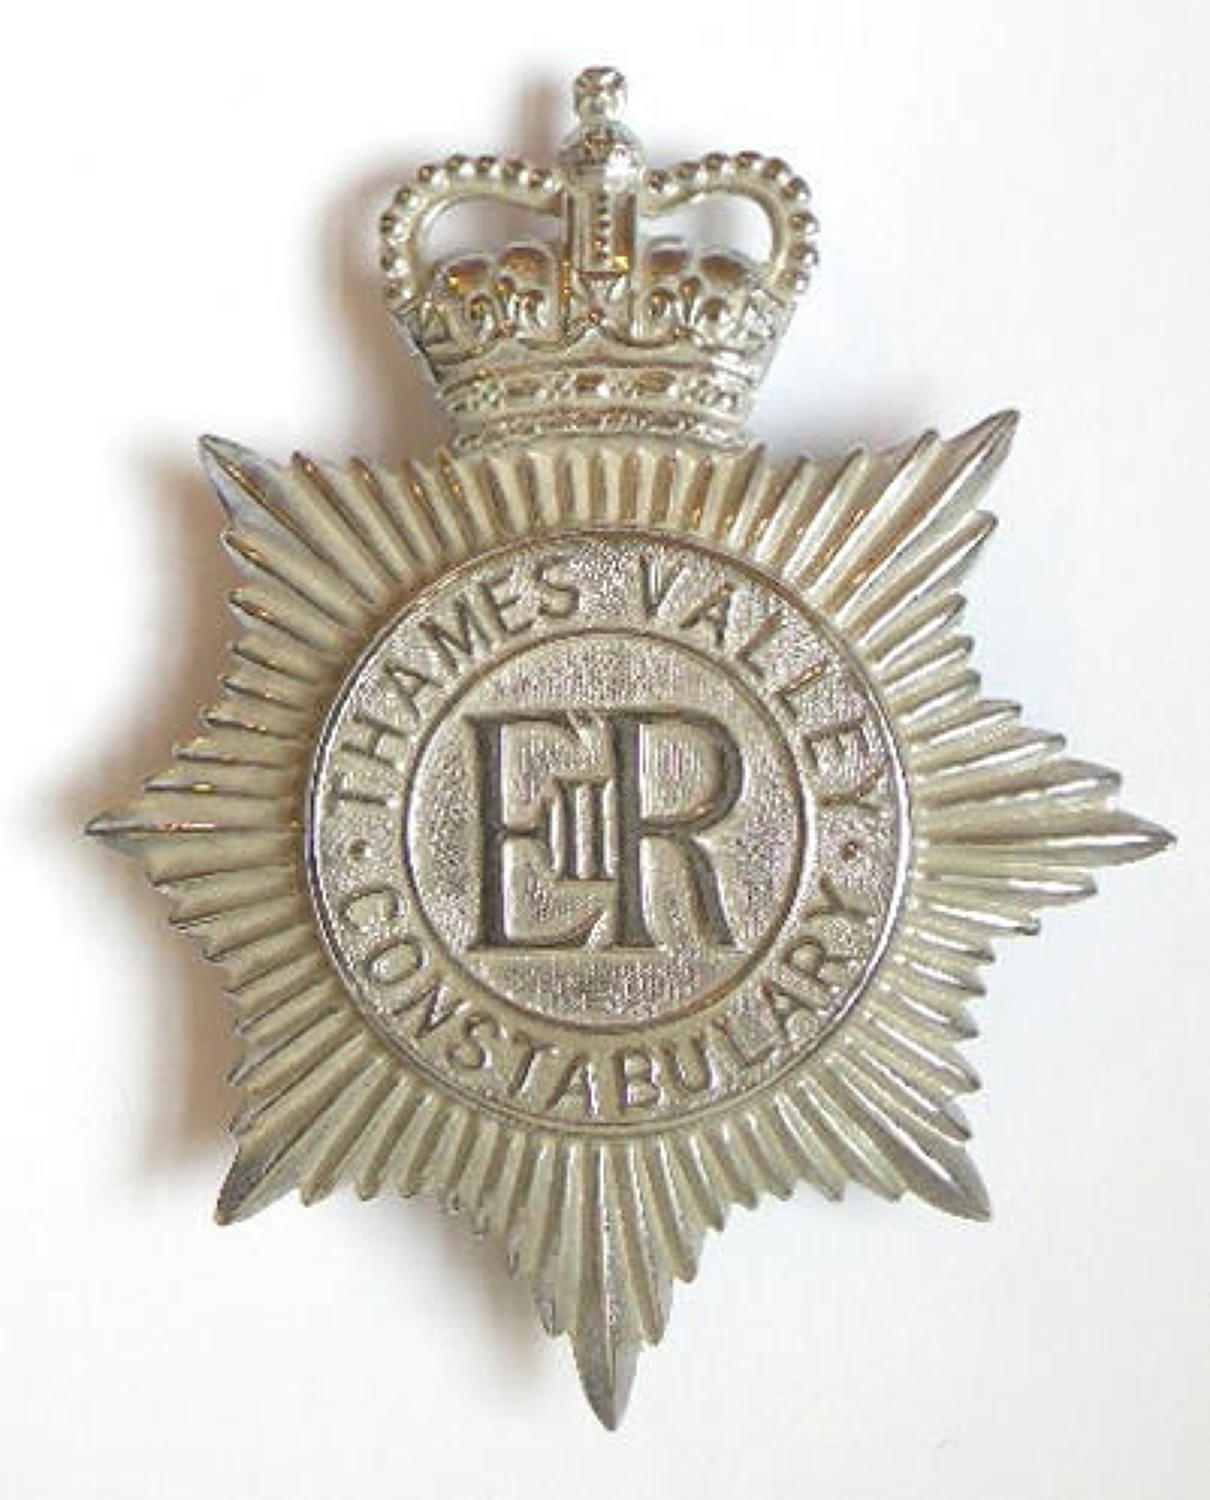 Thames Valley Constabulary chrome police helmet plate circa 1968-74. .